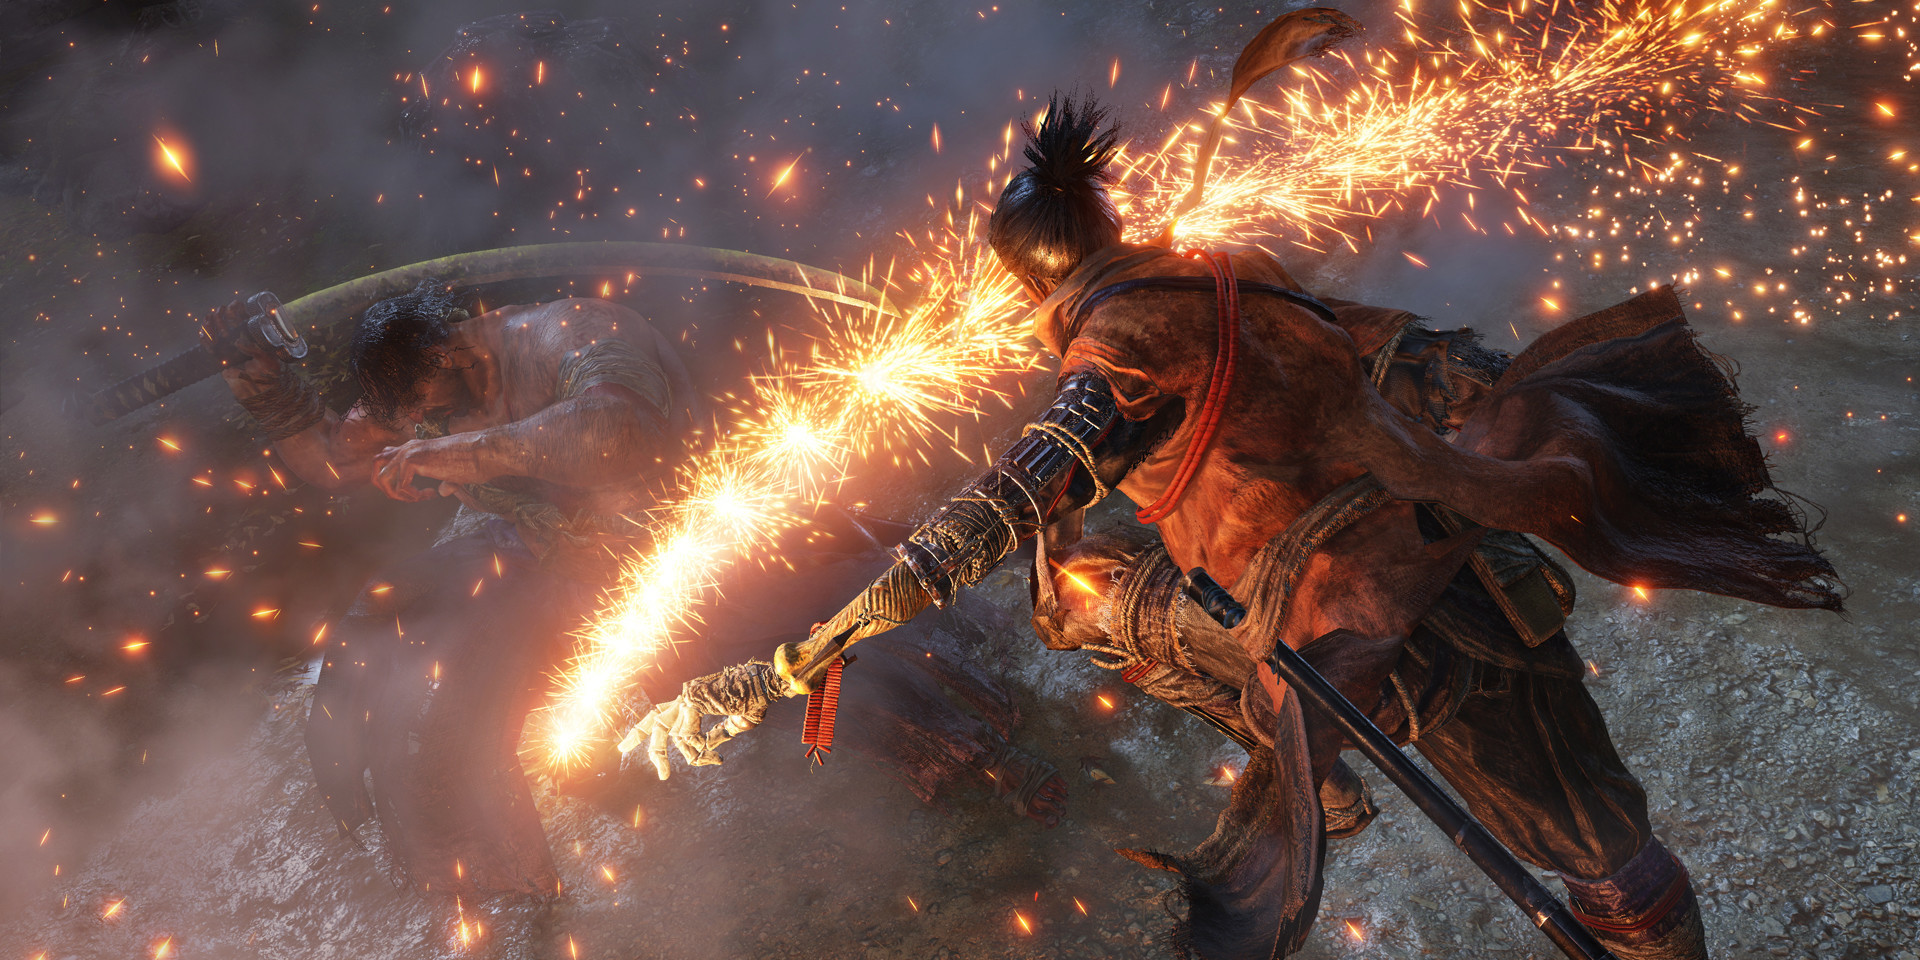 Today's Best Game Deals: Sekiro $40, Final Fantasy X|X-2 Remaster $40, more